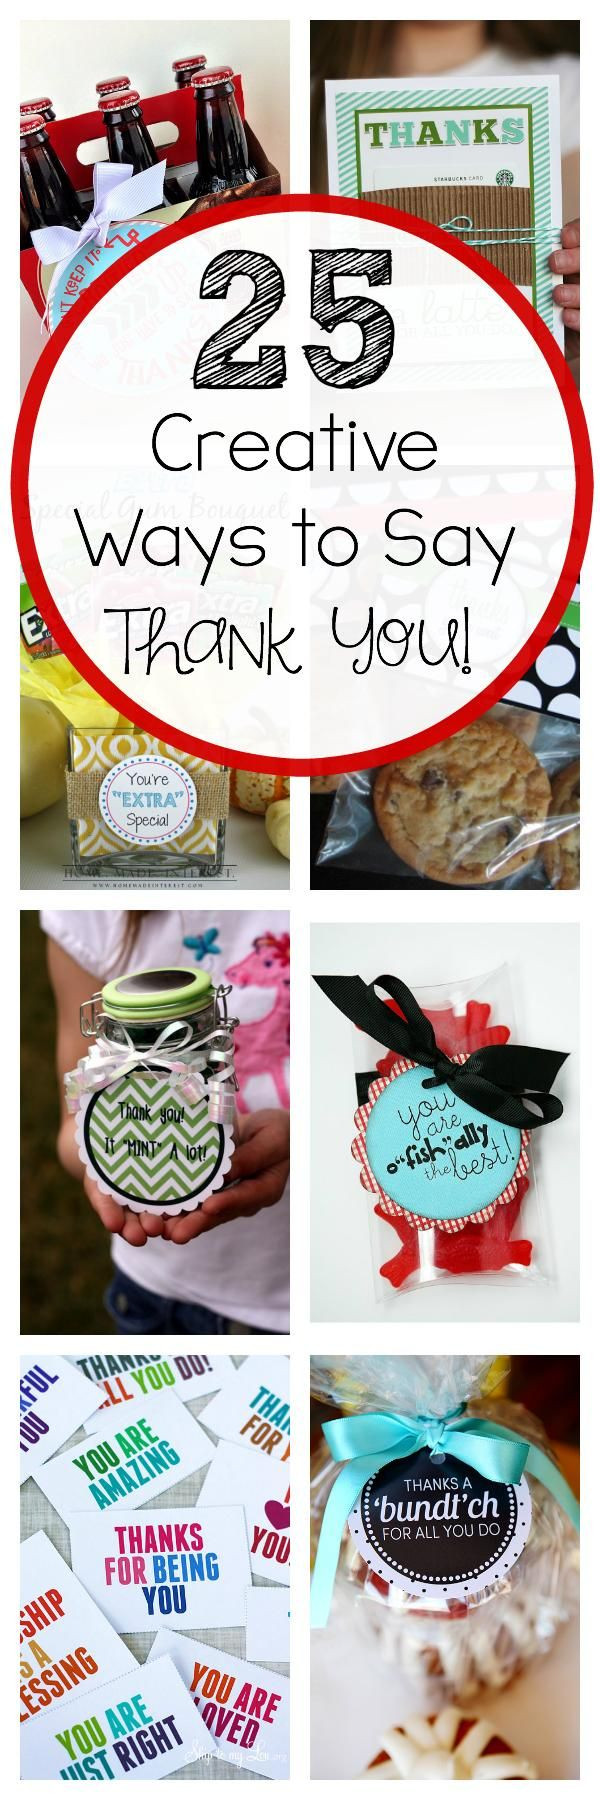 Gift Ideas To Say Thank You  25 Creative Ways to Say Thank You